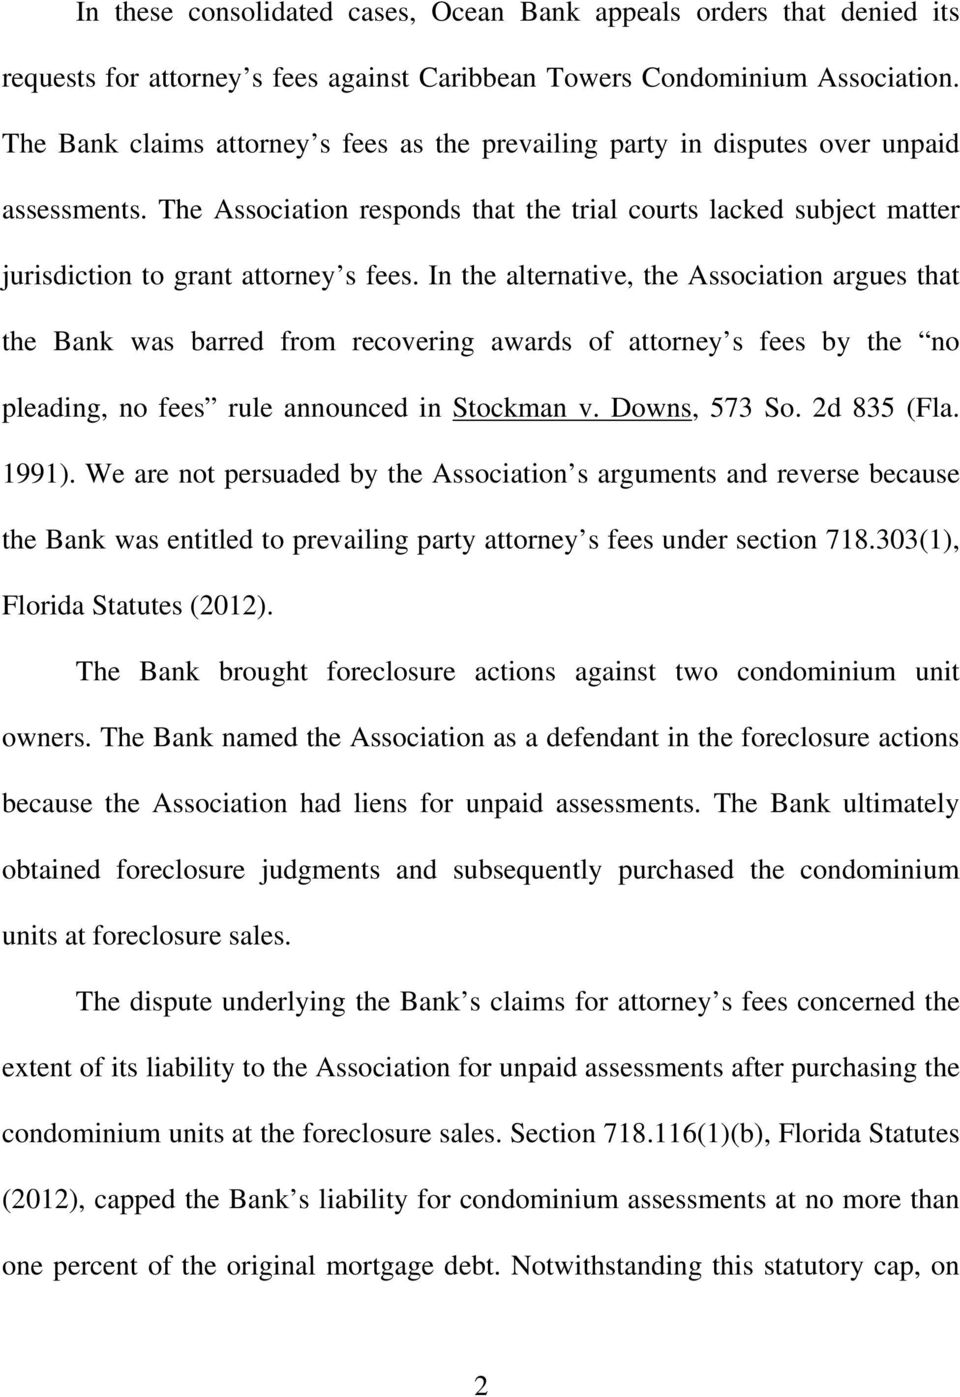 In the alternative, the Association argues that the Bank was barred from recovering awards of attorney s fees by the no pleading, no fees rule announced in Stockman v. Downs, 573 So. 2d 835 (Fla.